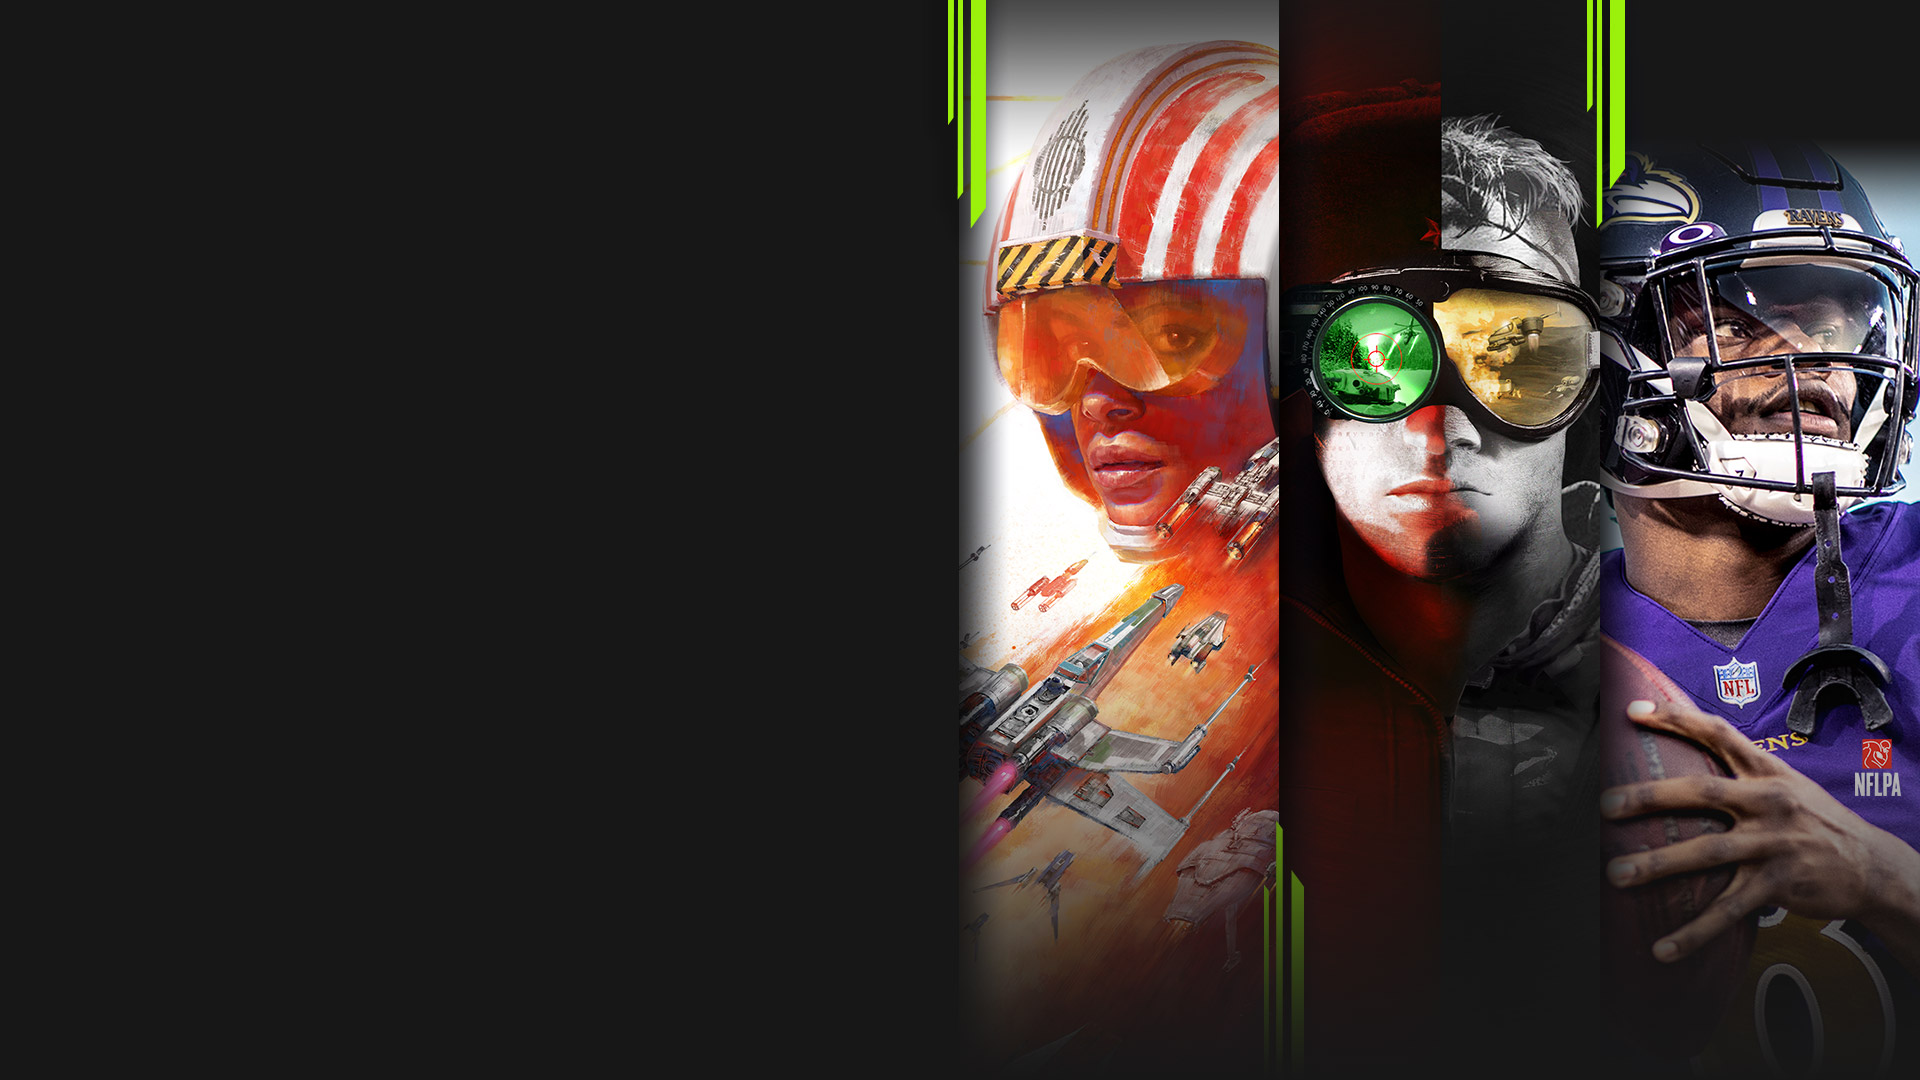 Game art from multiple EA Play titles available with Xbox Game Pass, including Star Wars: Squadrons, Command & Conquer Remastered Collection, Madden NFL 21 and The Sims 4.